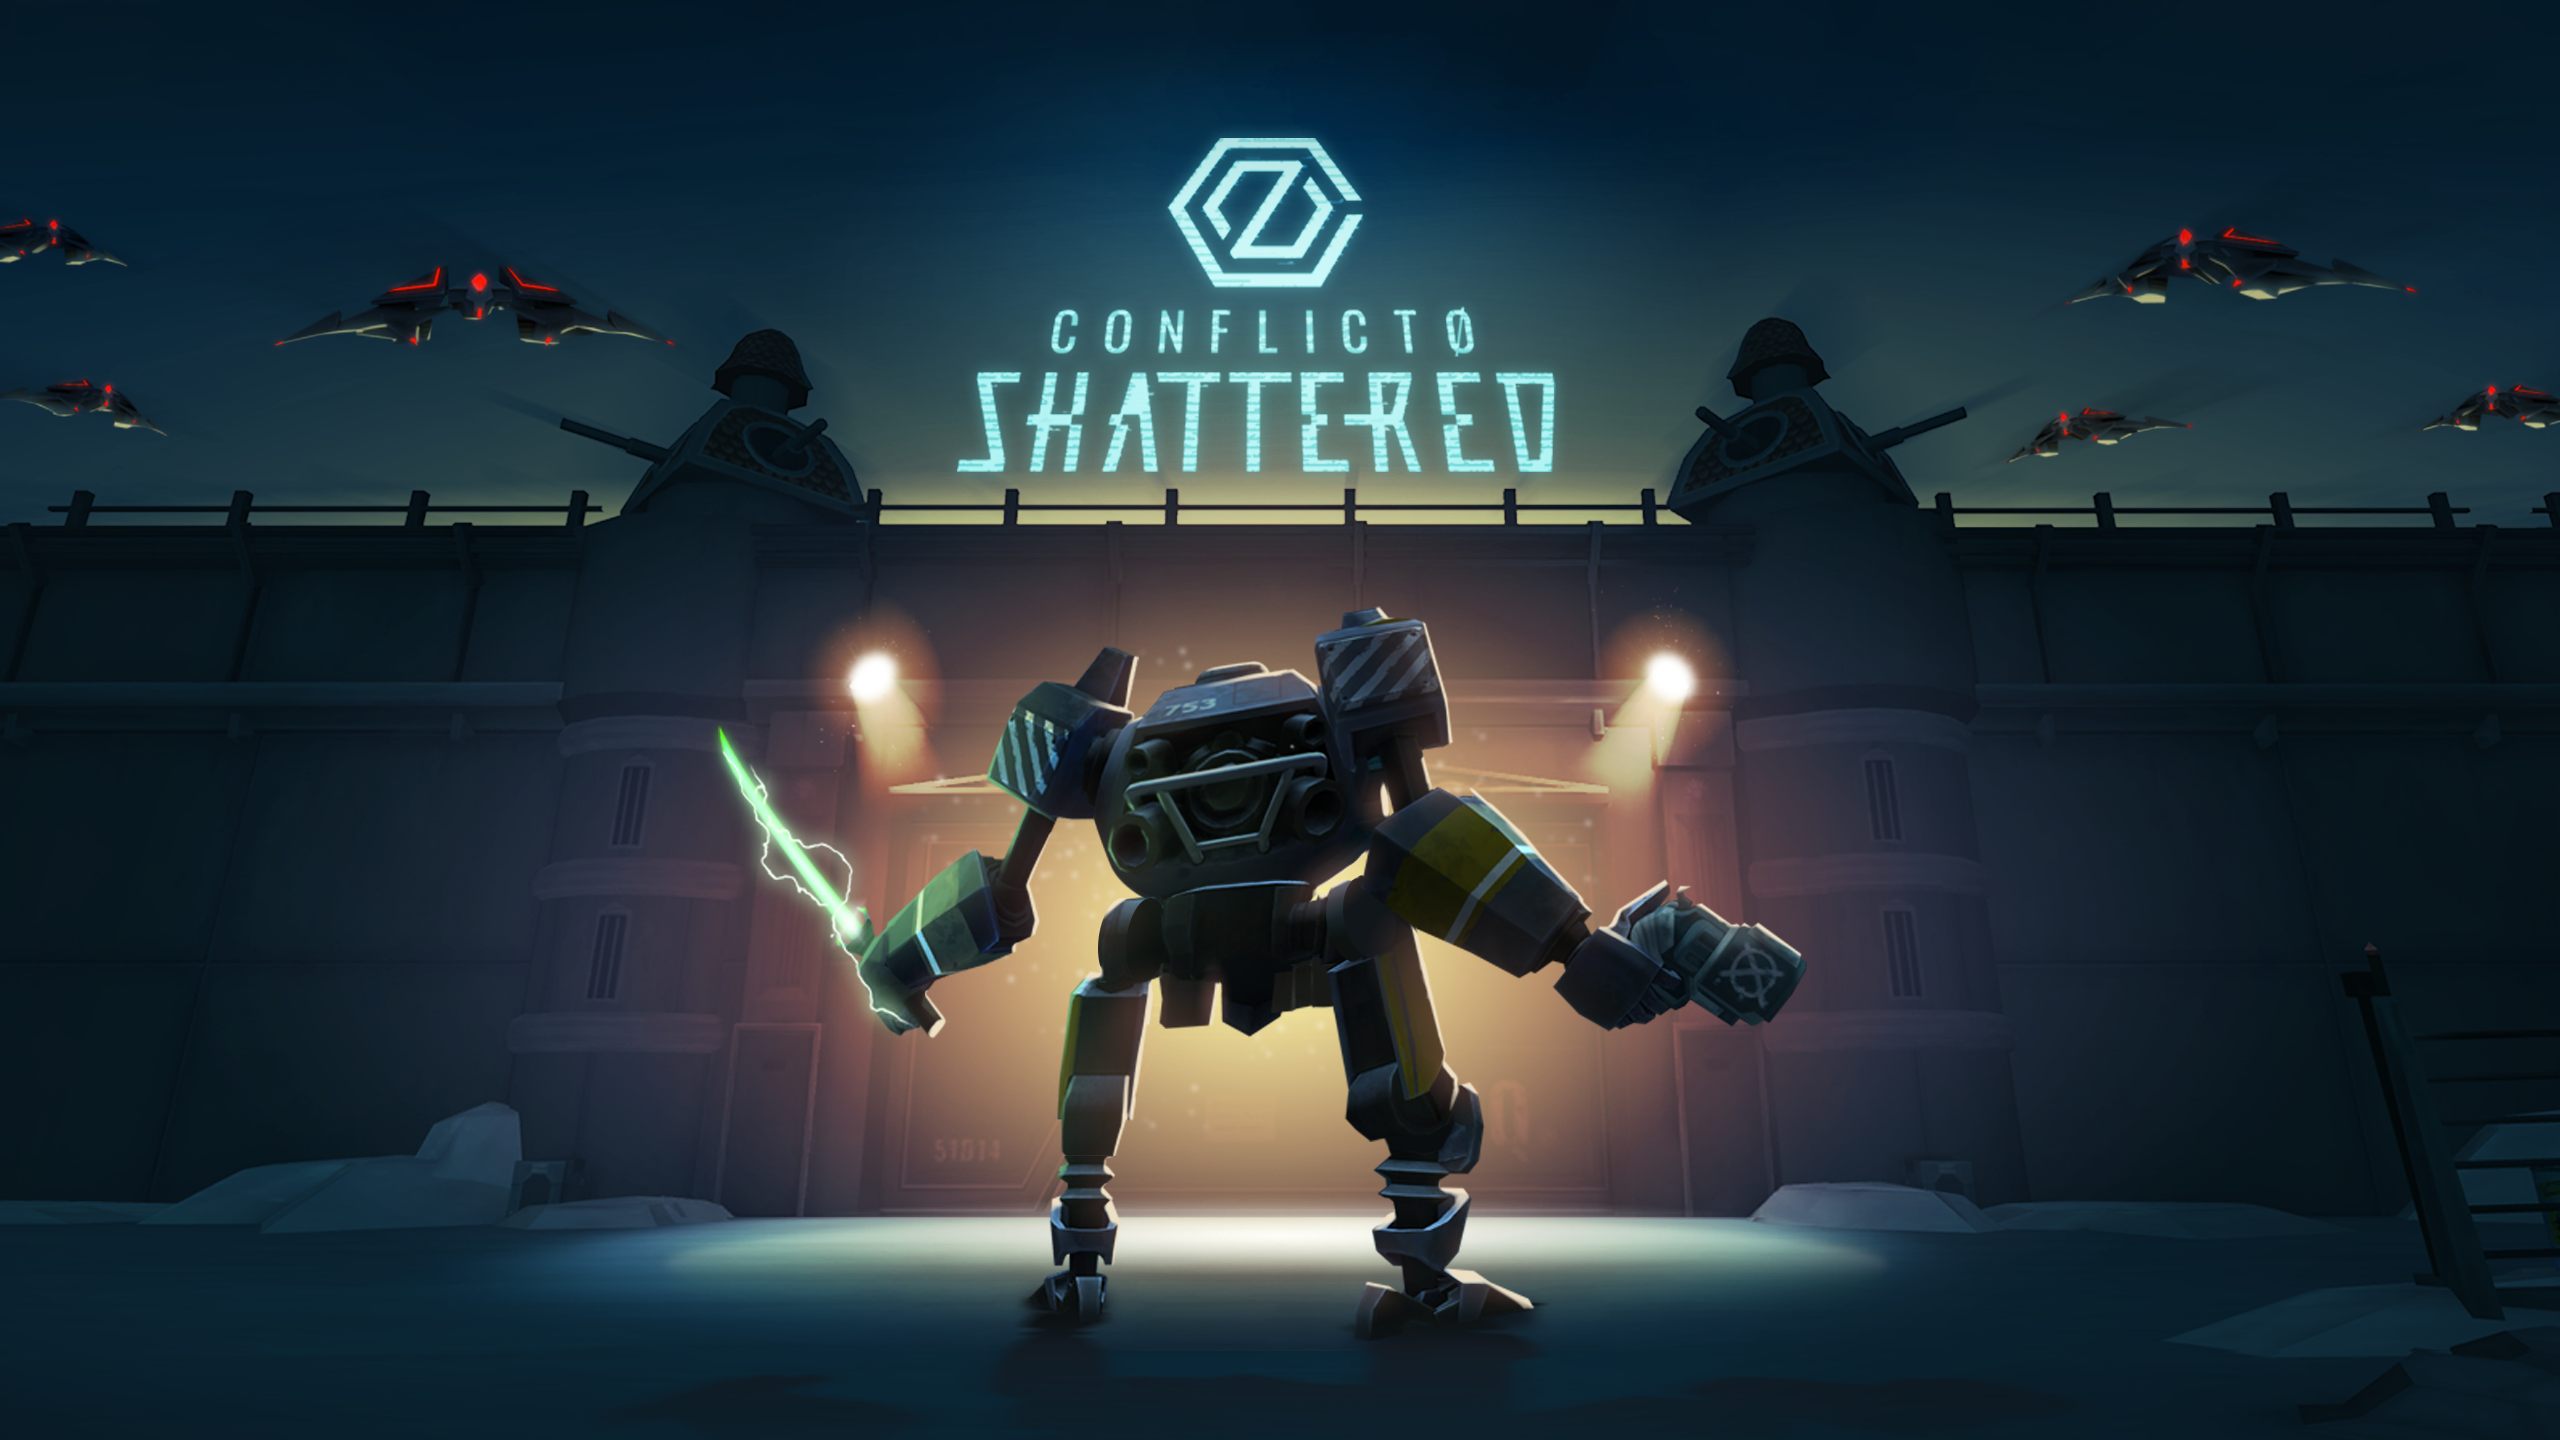 Conflict 0 - Shattered